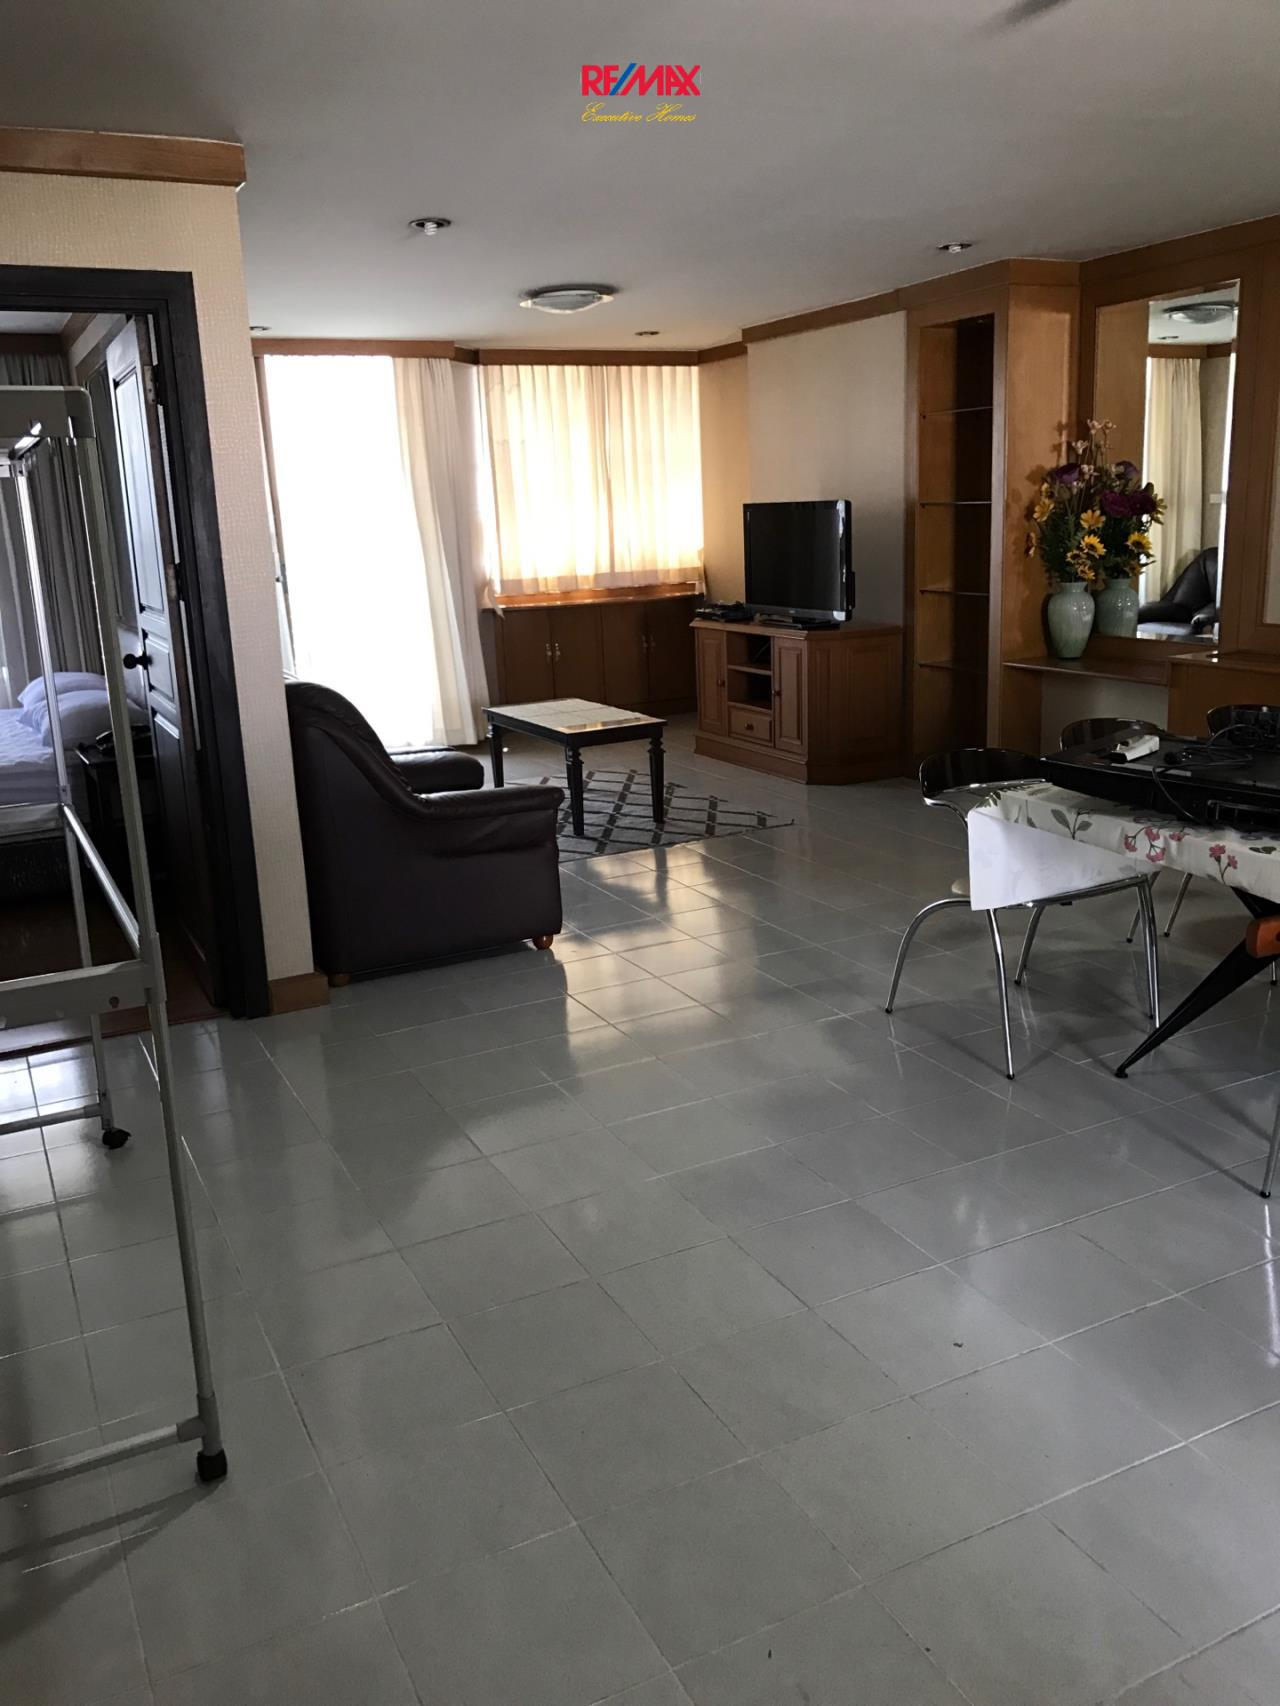 RE/MAX Executive Homes Agency's Spacious 2 Bedroom for Rent Supalai Place 39 1